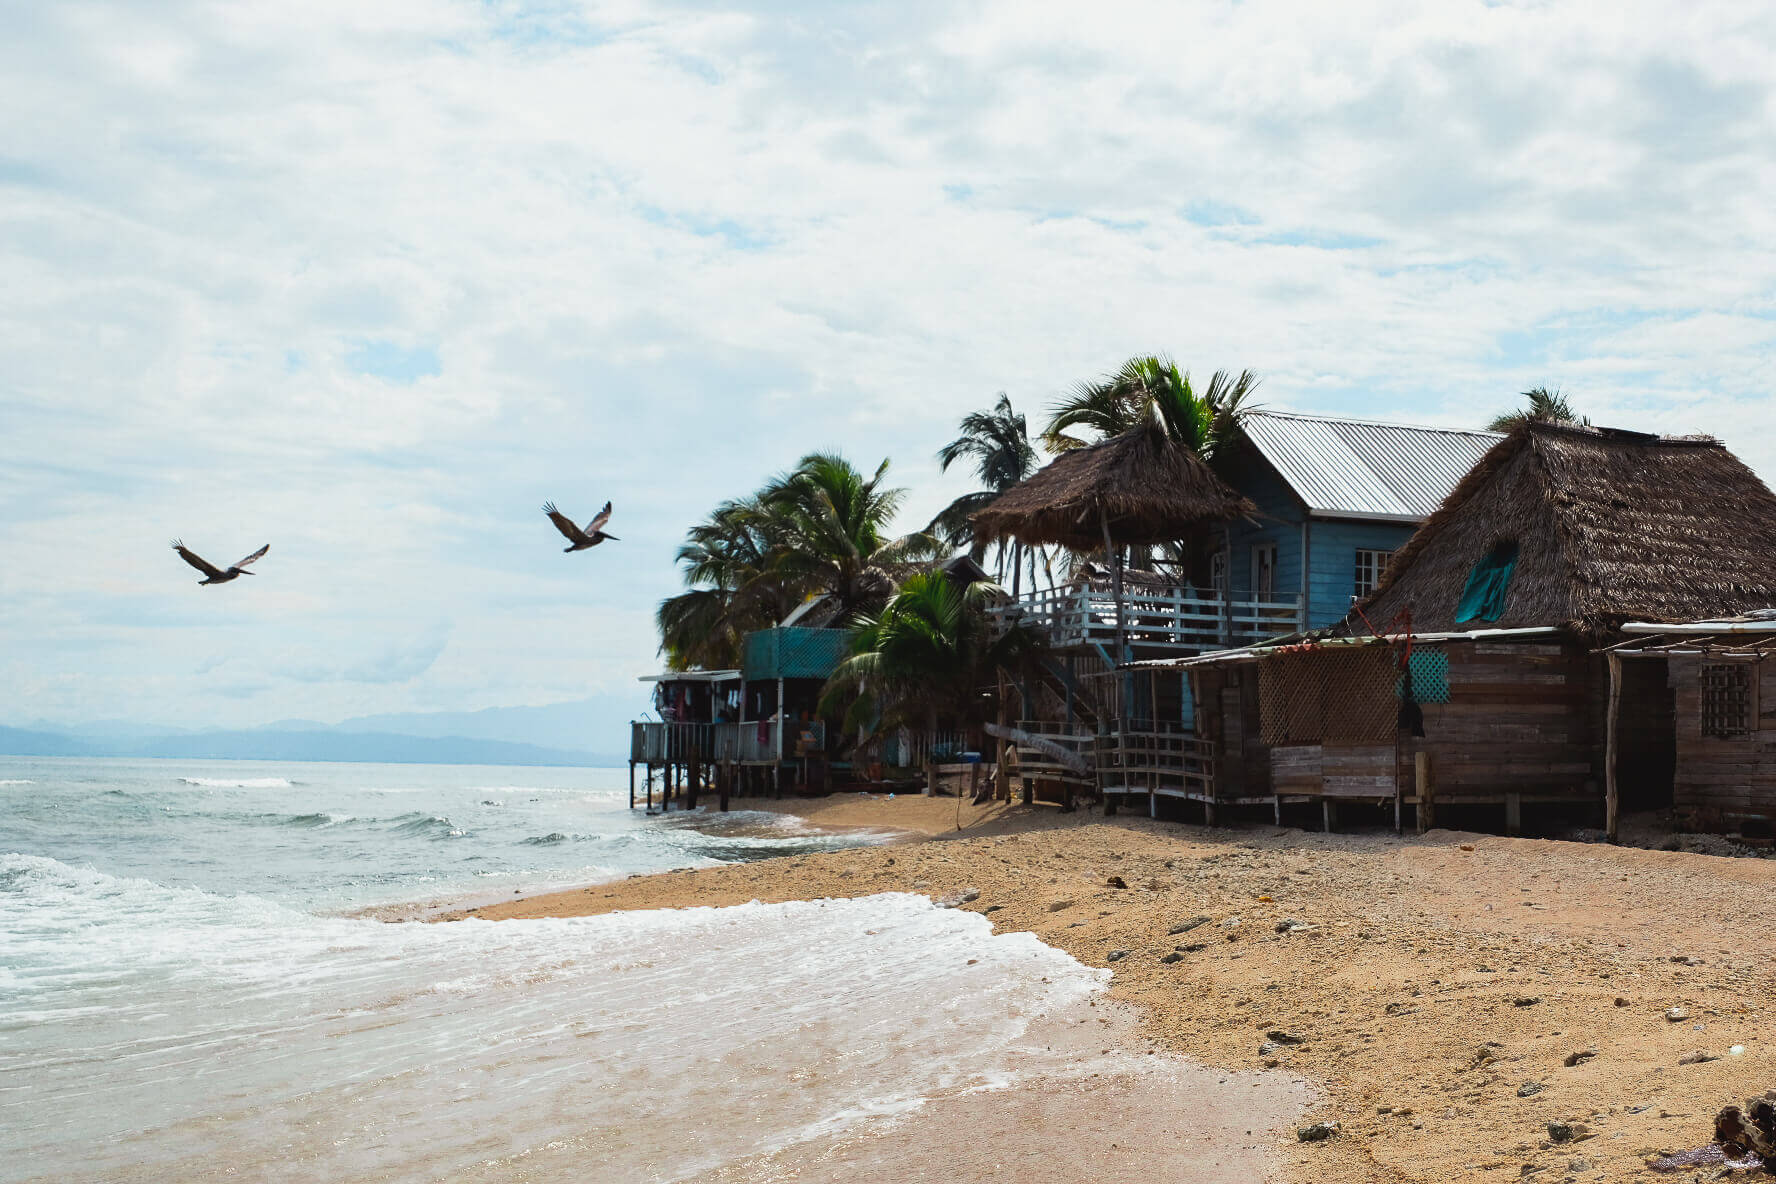 Backpackers and adventure travelers stay overnight in Garifuna village on Chachahuate Cay